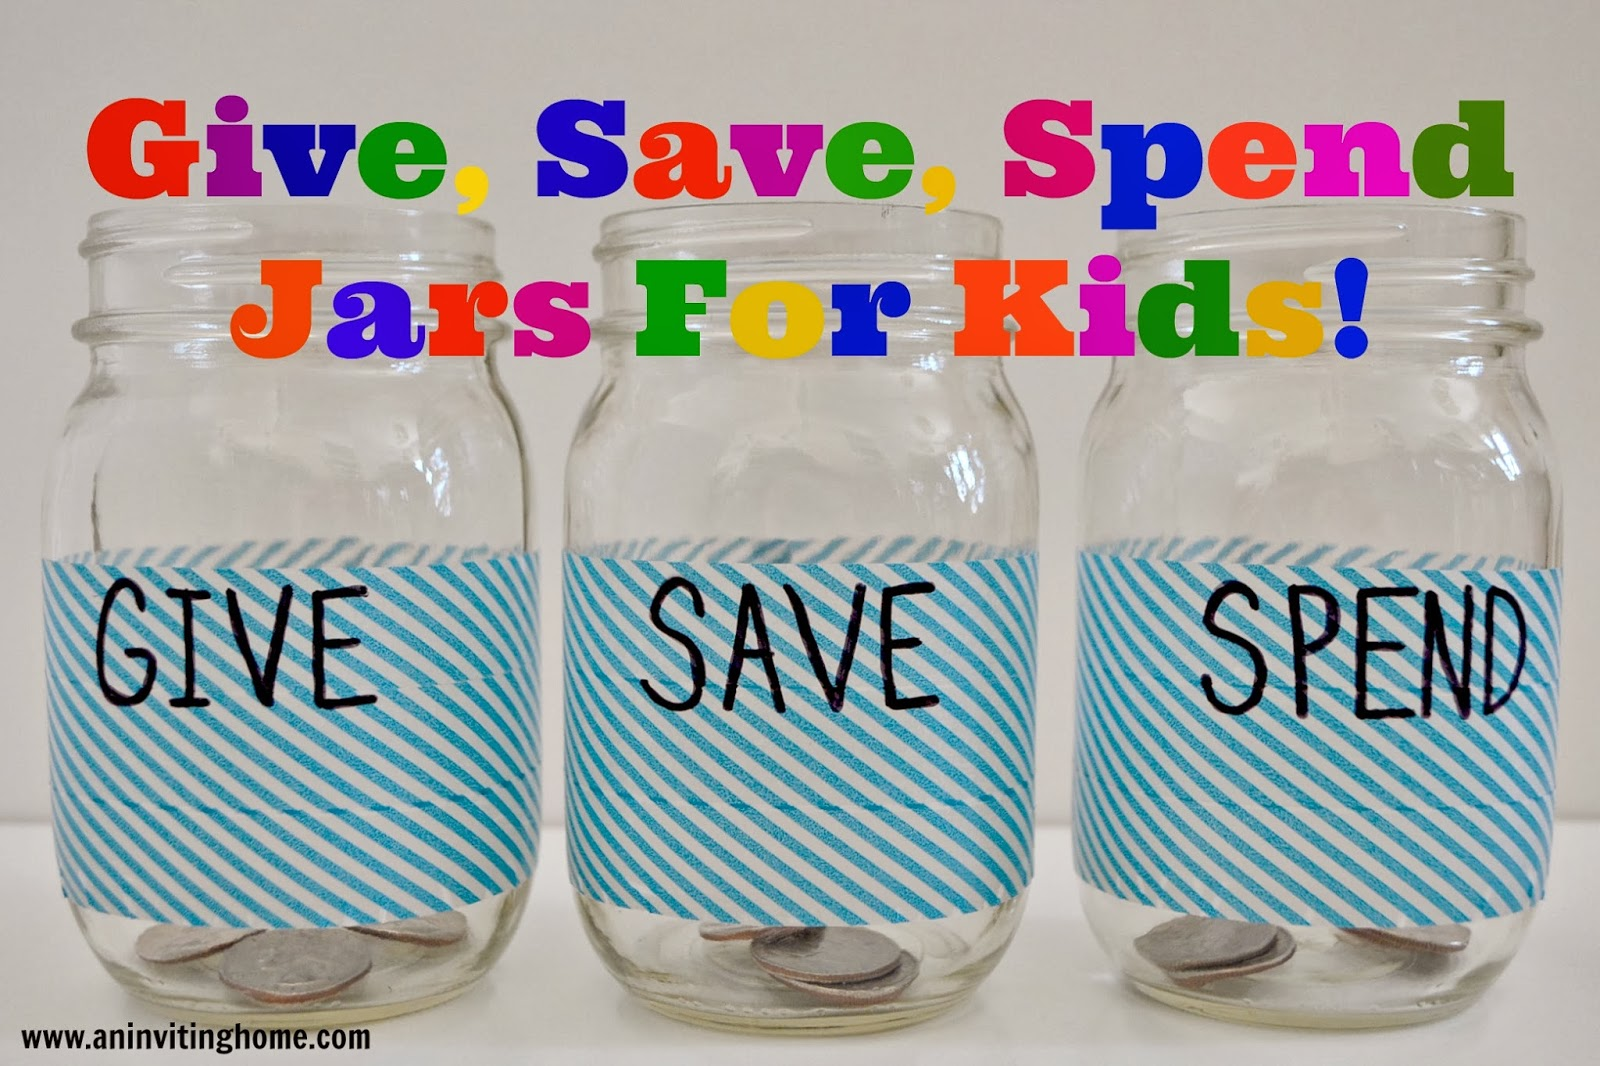 Give, Save, Spend Jars For Kids!